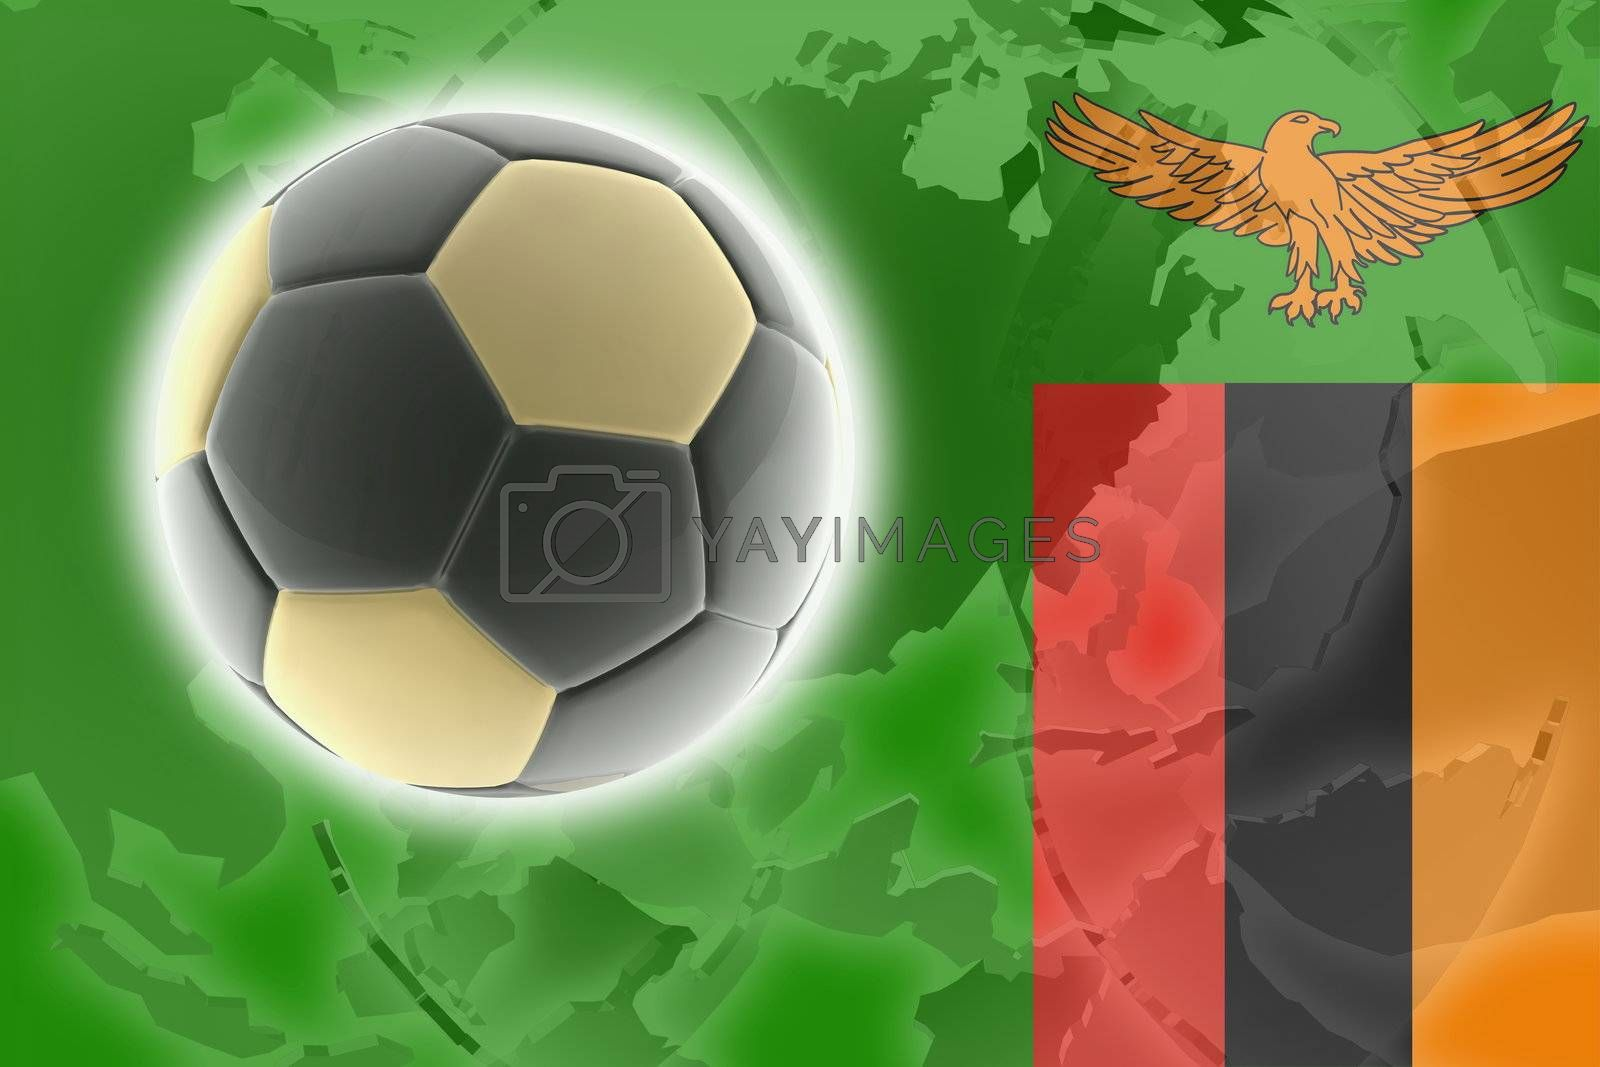 Royalty free image of Flag of Zambia soccer by kgtoh